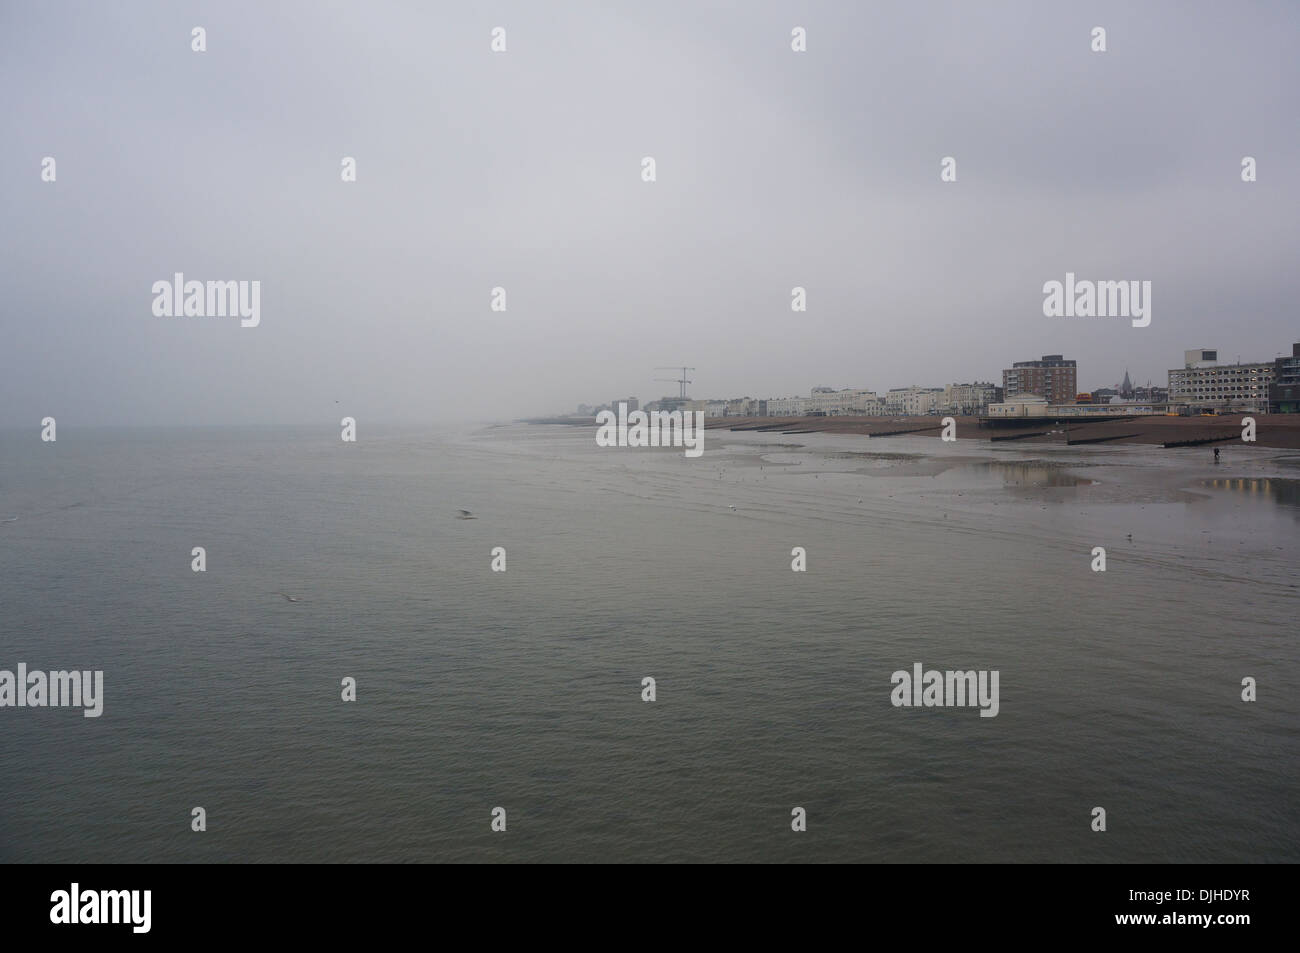 Foggy overcast day in Worthing, West Sussex, UK - Stock Image